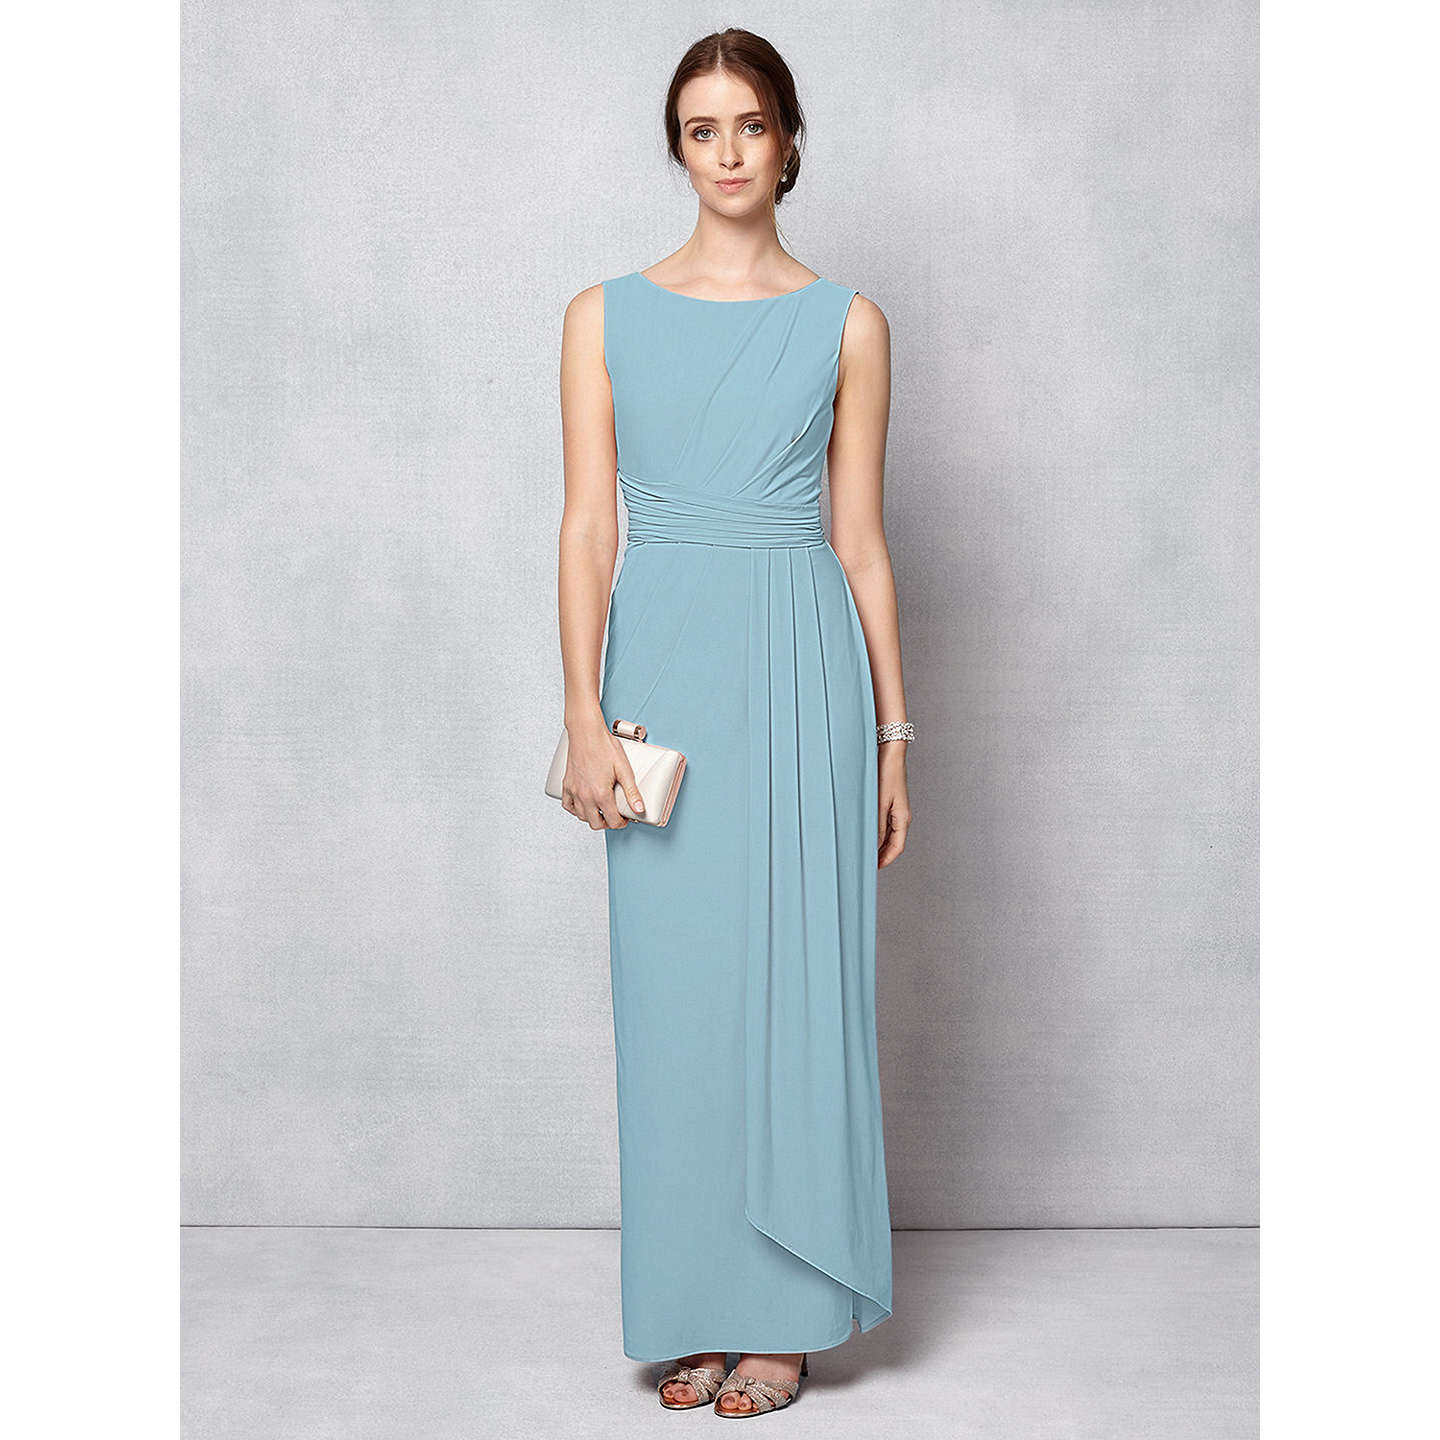 Phase Eight Bridal Cody Maxi Dress, Dusty Blue at John Lewis